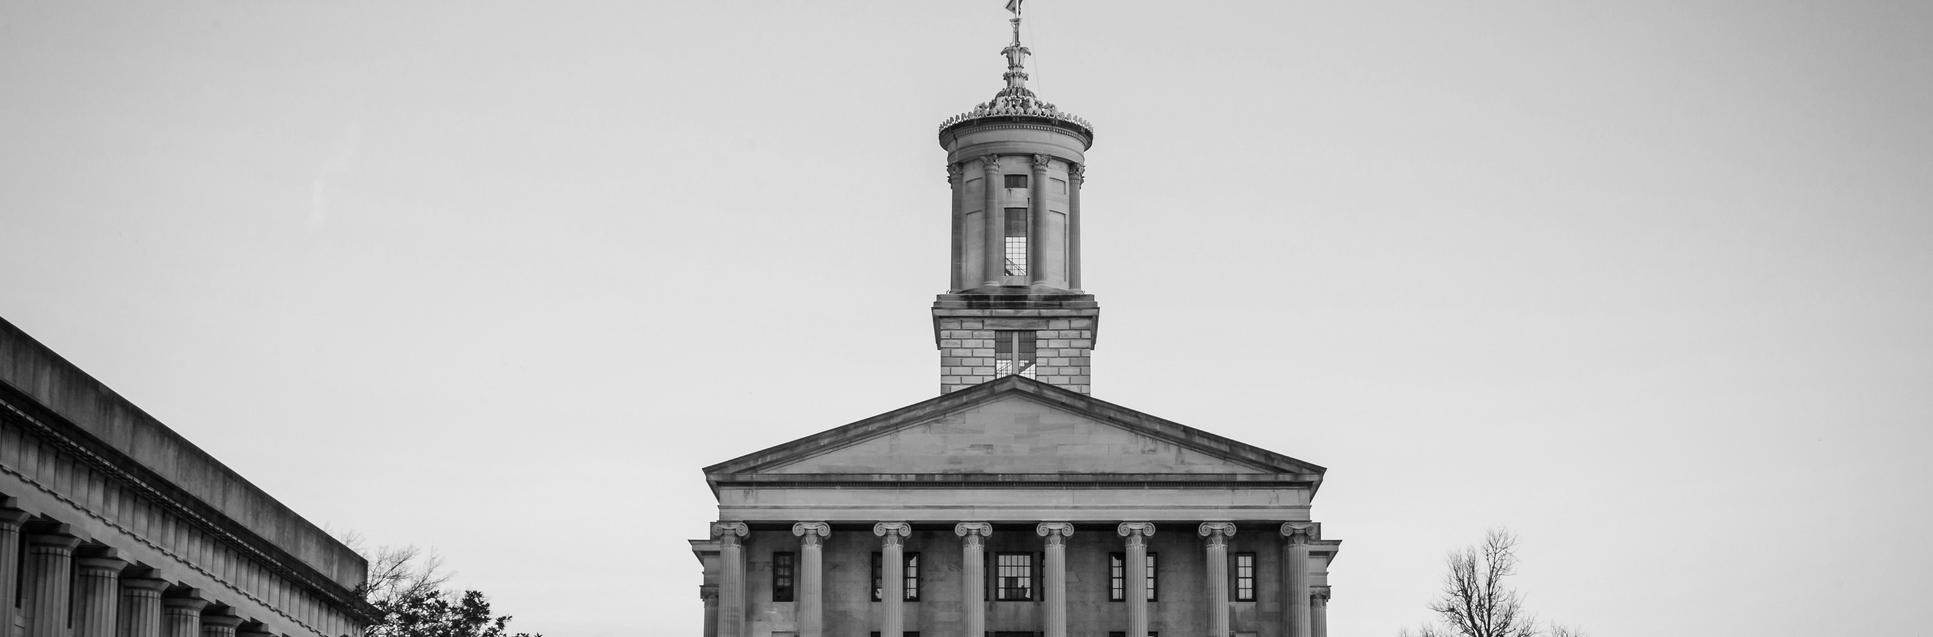 Image of Tennessee capitol building